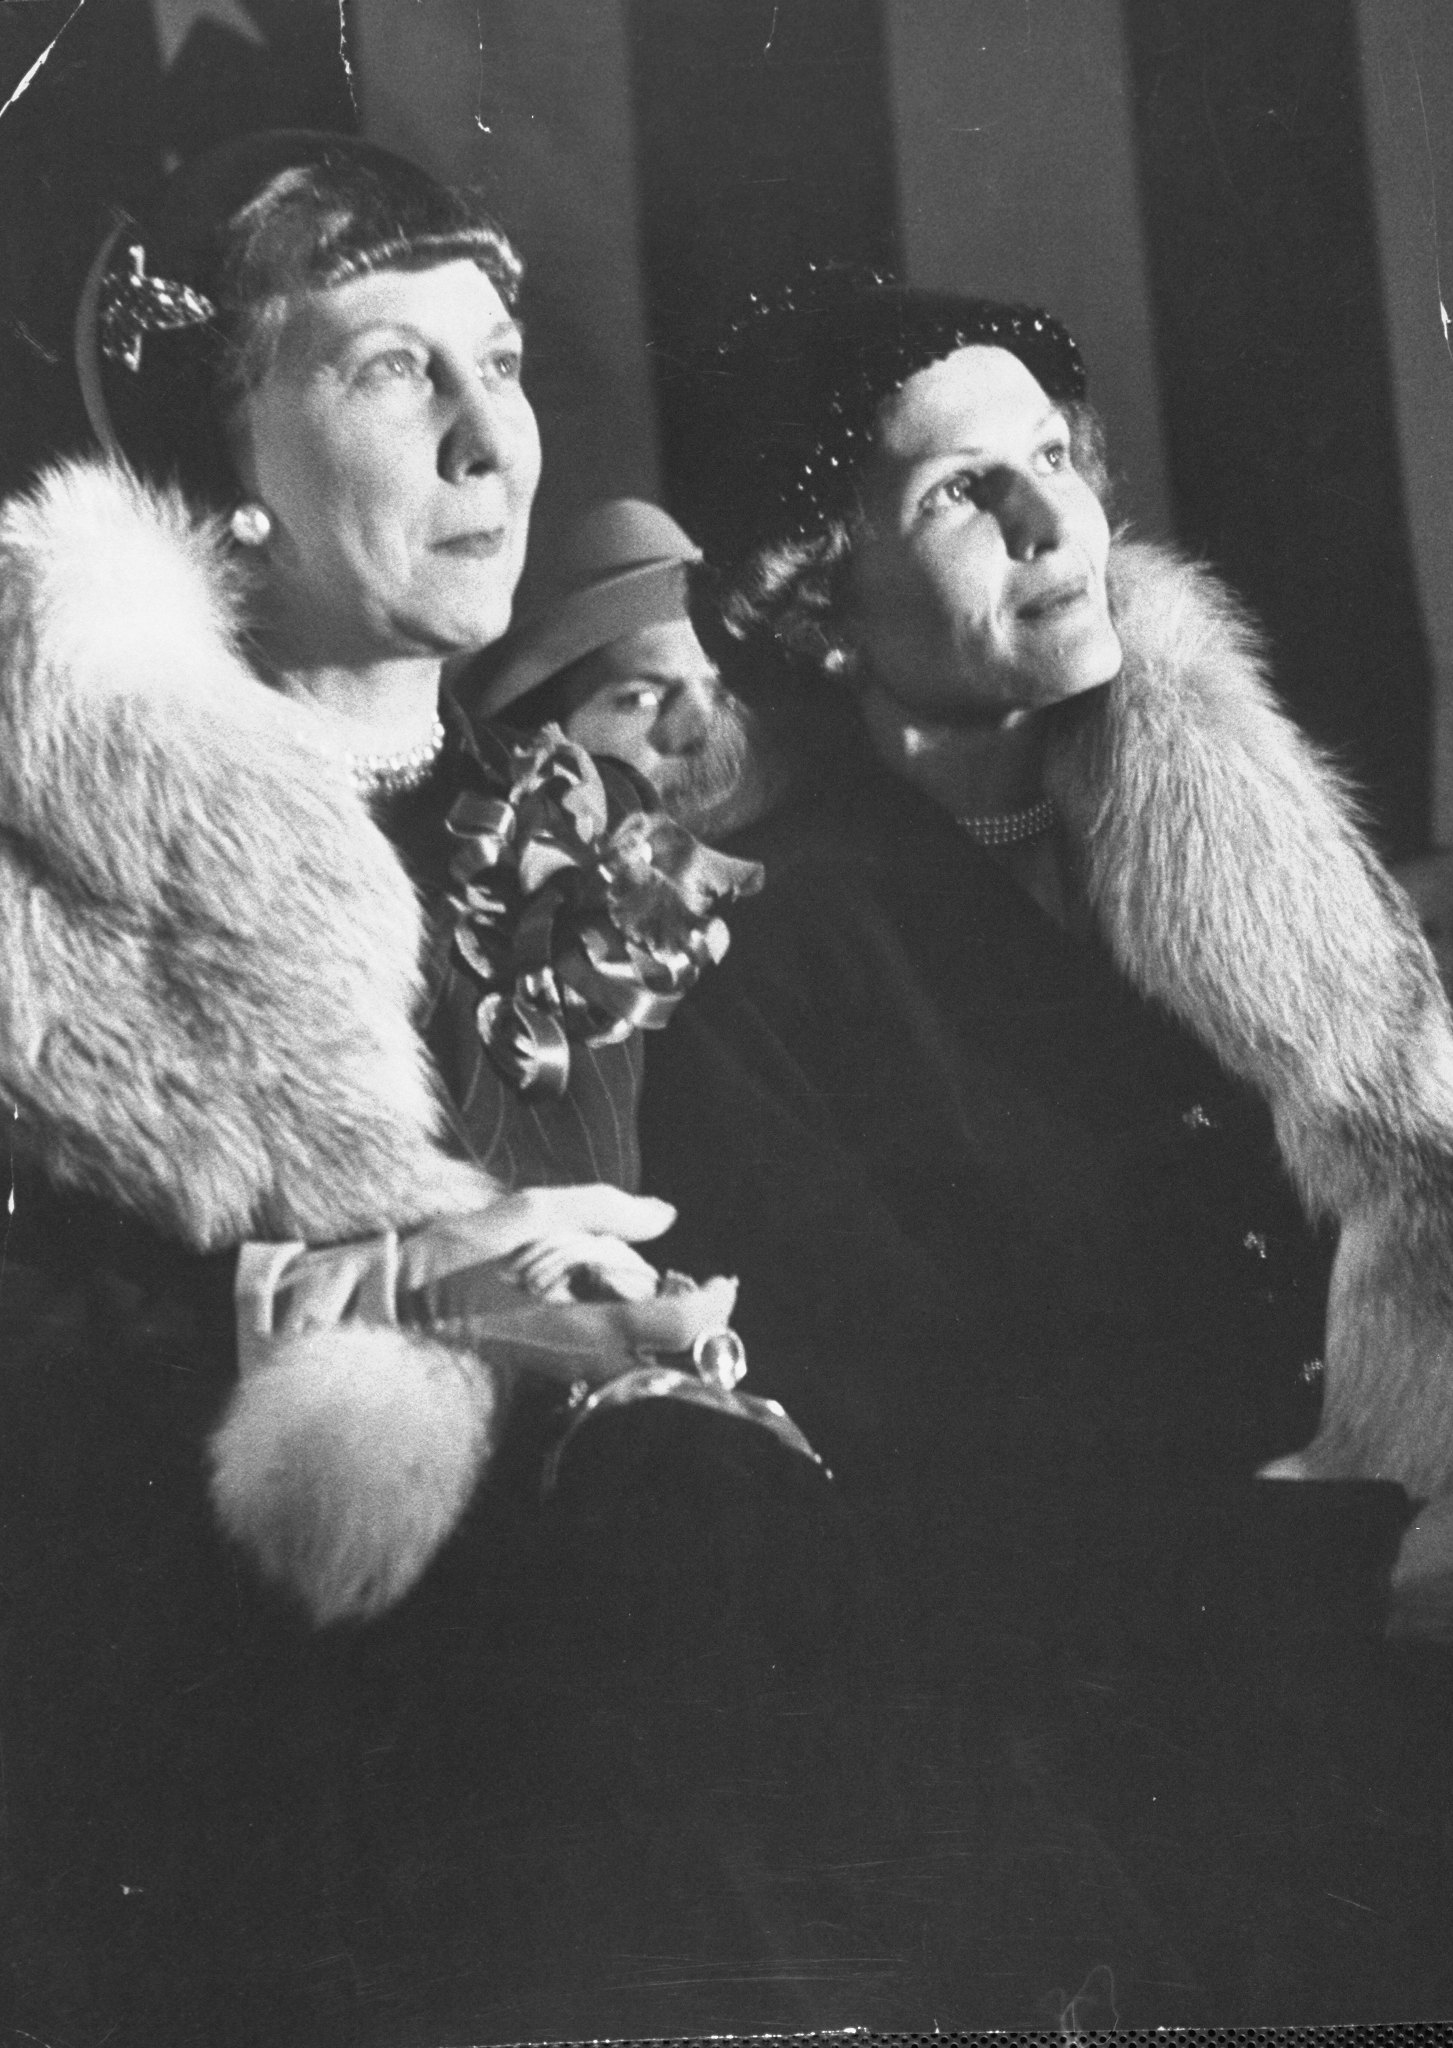 Mrs. Mamie Eisenhower (L) sharing her fur with Mrs. Patricia Nixon on a chilly night in 1952.